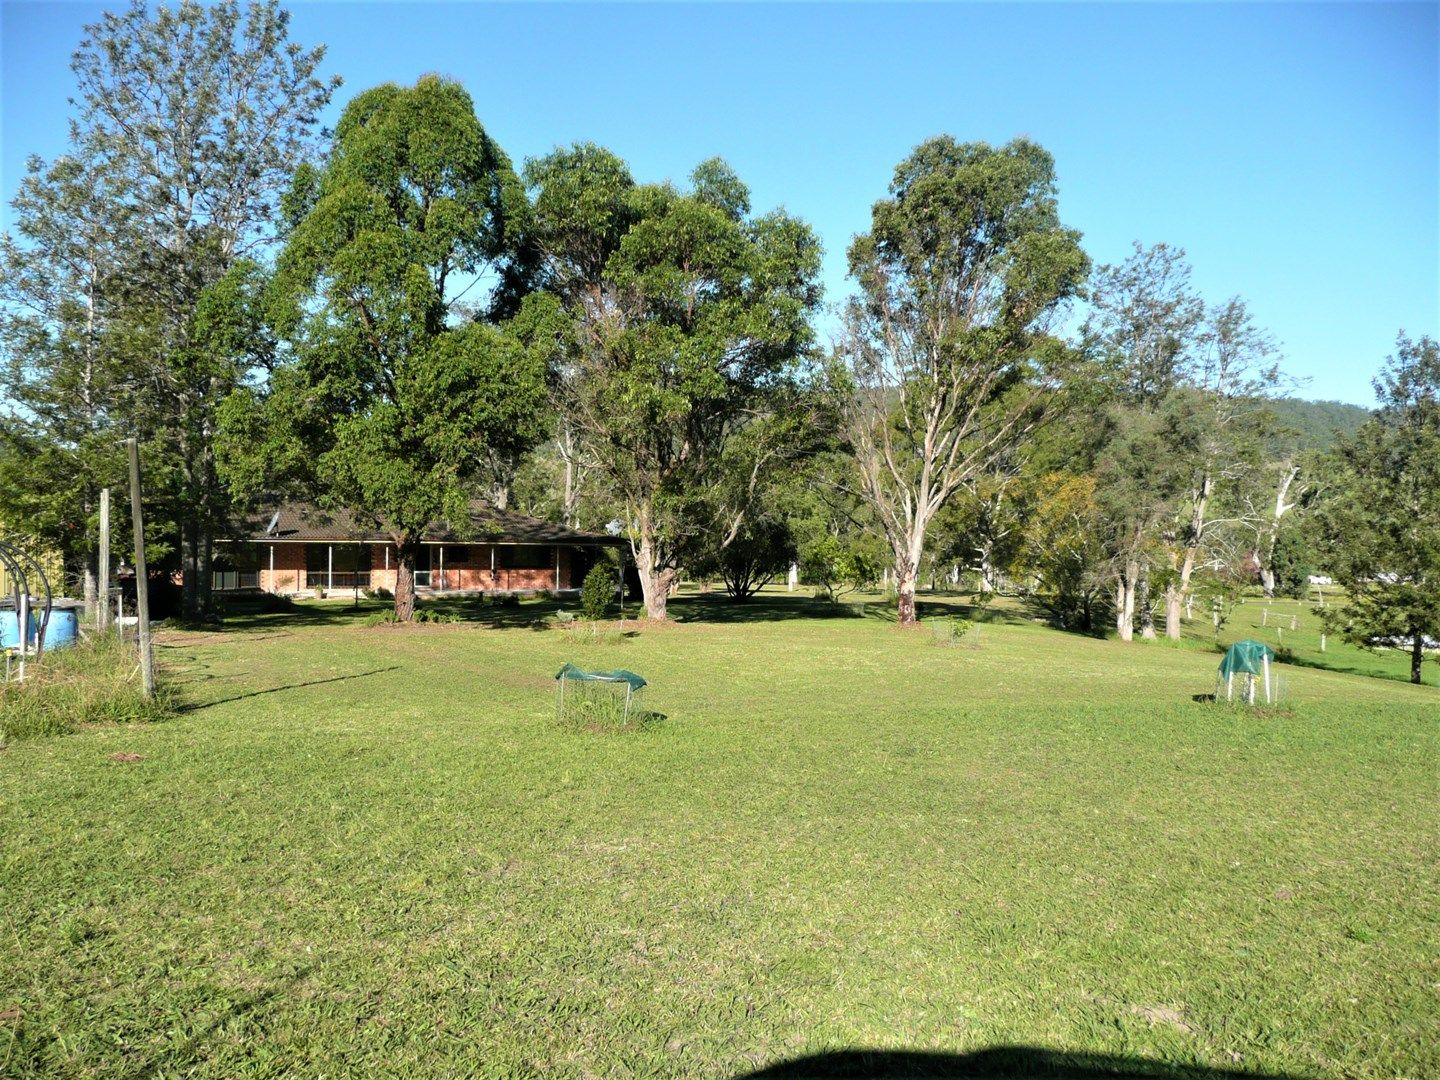 758 Barrington West Rd, Barrington NSW 2422, Image 2